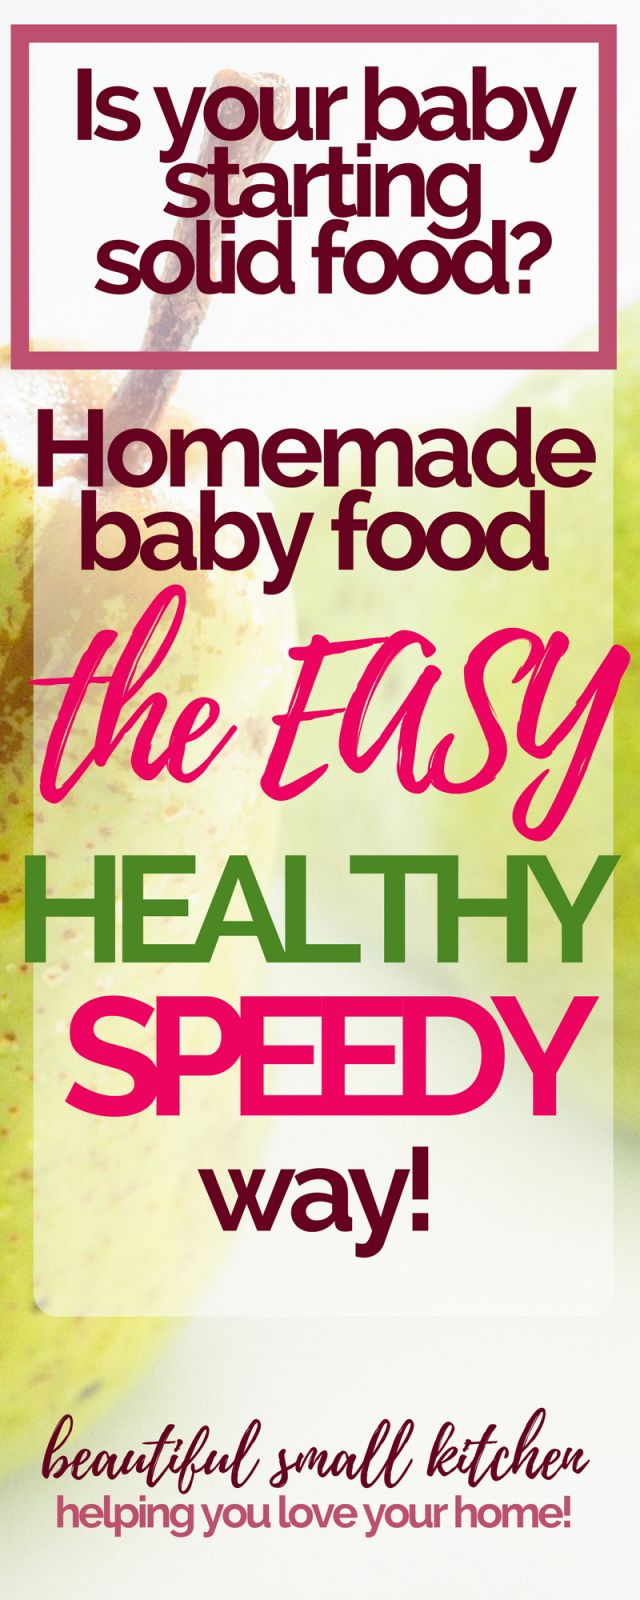 Homemade baby food - making it fresh, easy and delicious! Starting solid food should be a fun time for you and your baby. These are 11 reasons why I love my baby food system, and why it keeps my baby eating tasty, organic, nutritious food. #homemadebabyfood #solidfood #beabababycook #beaba